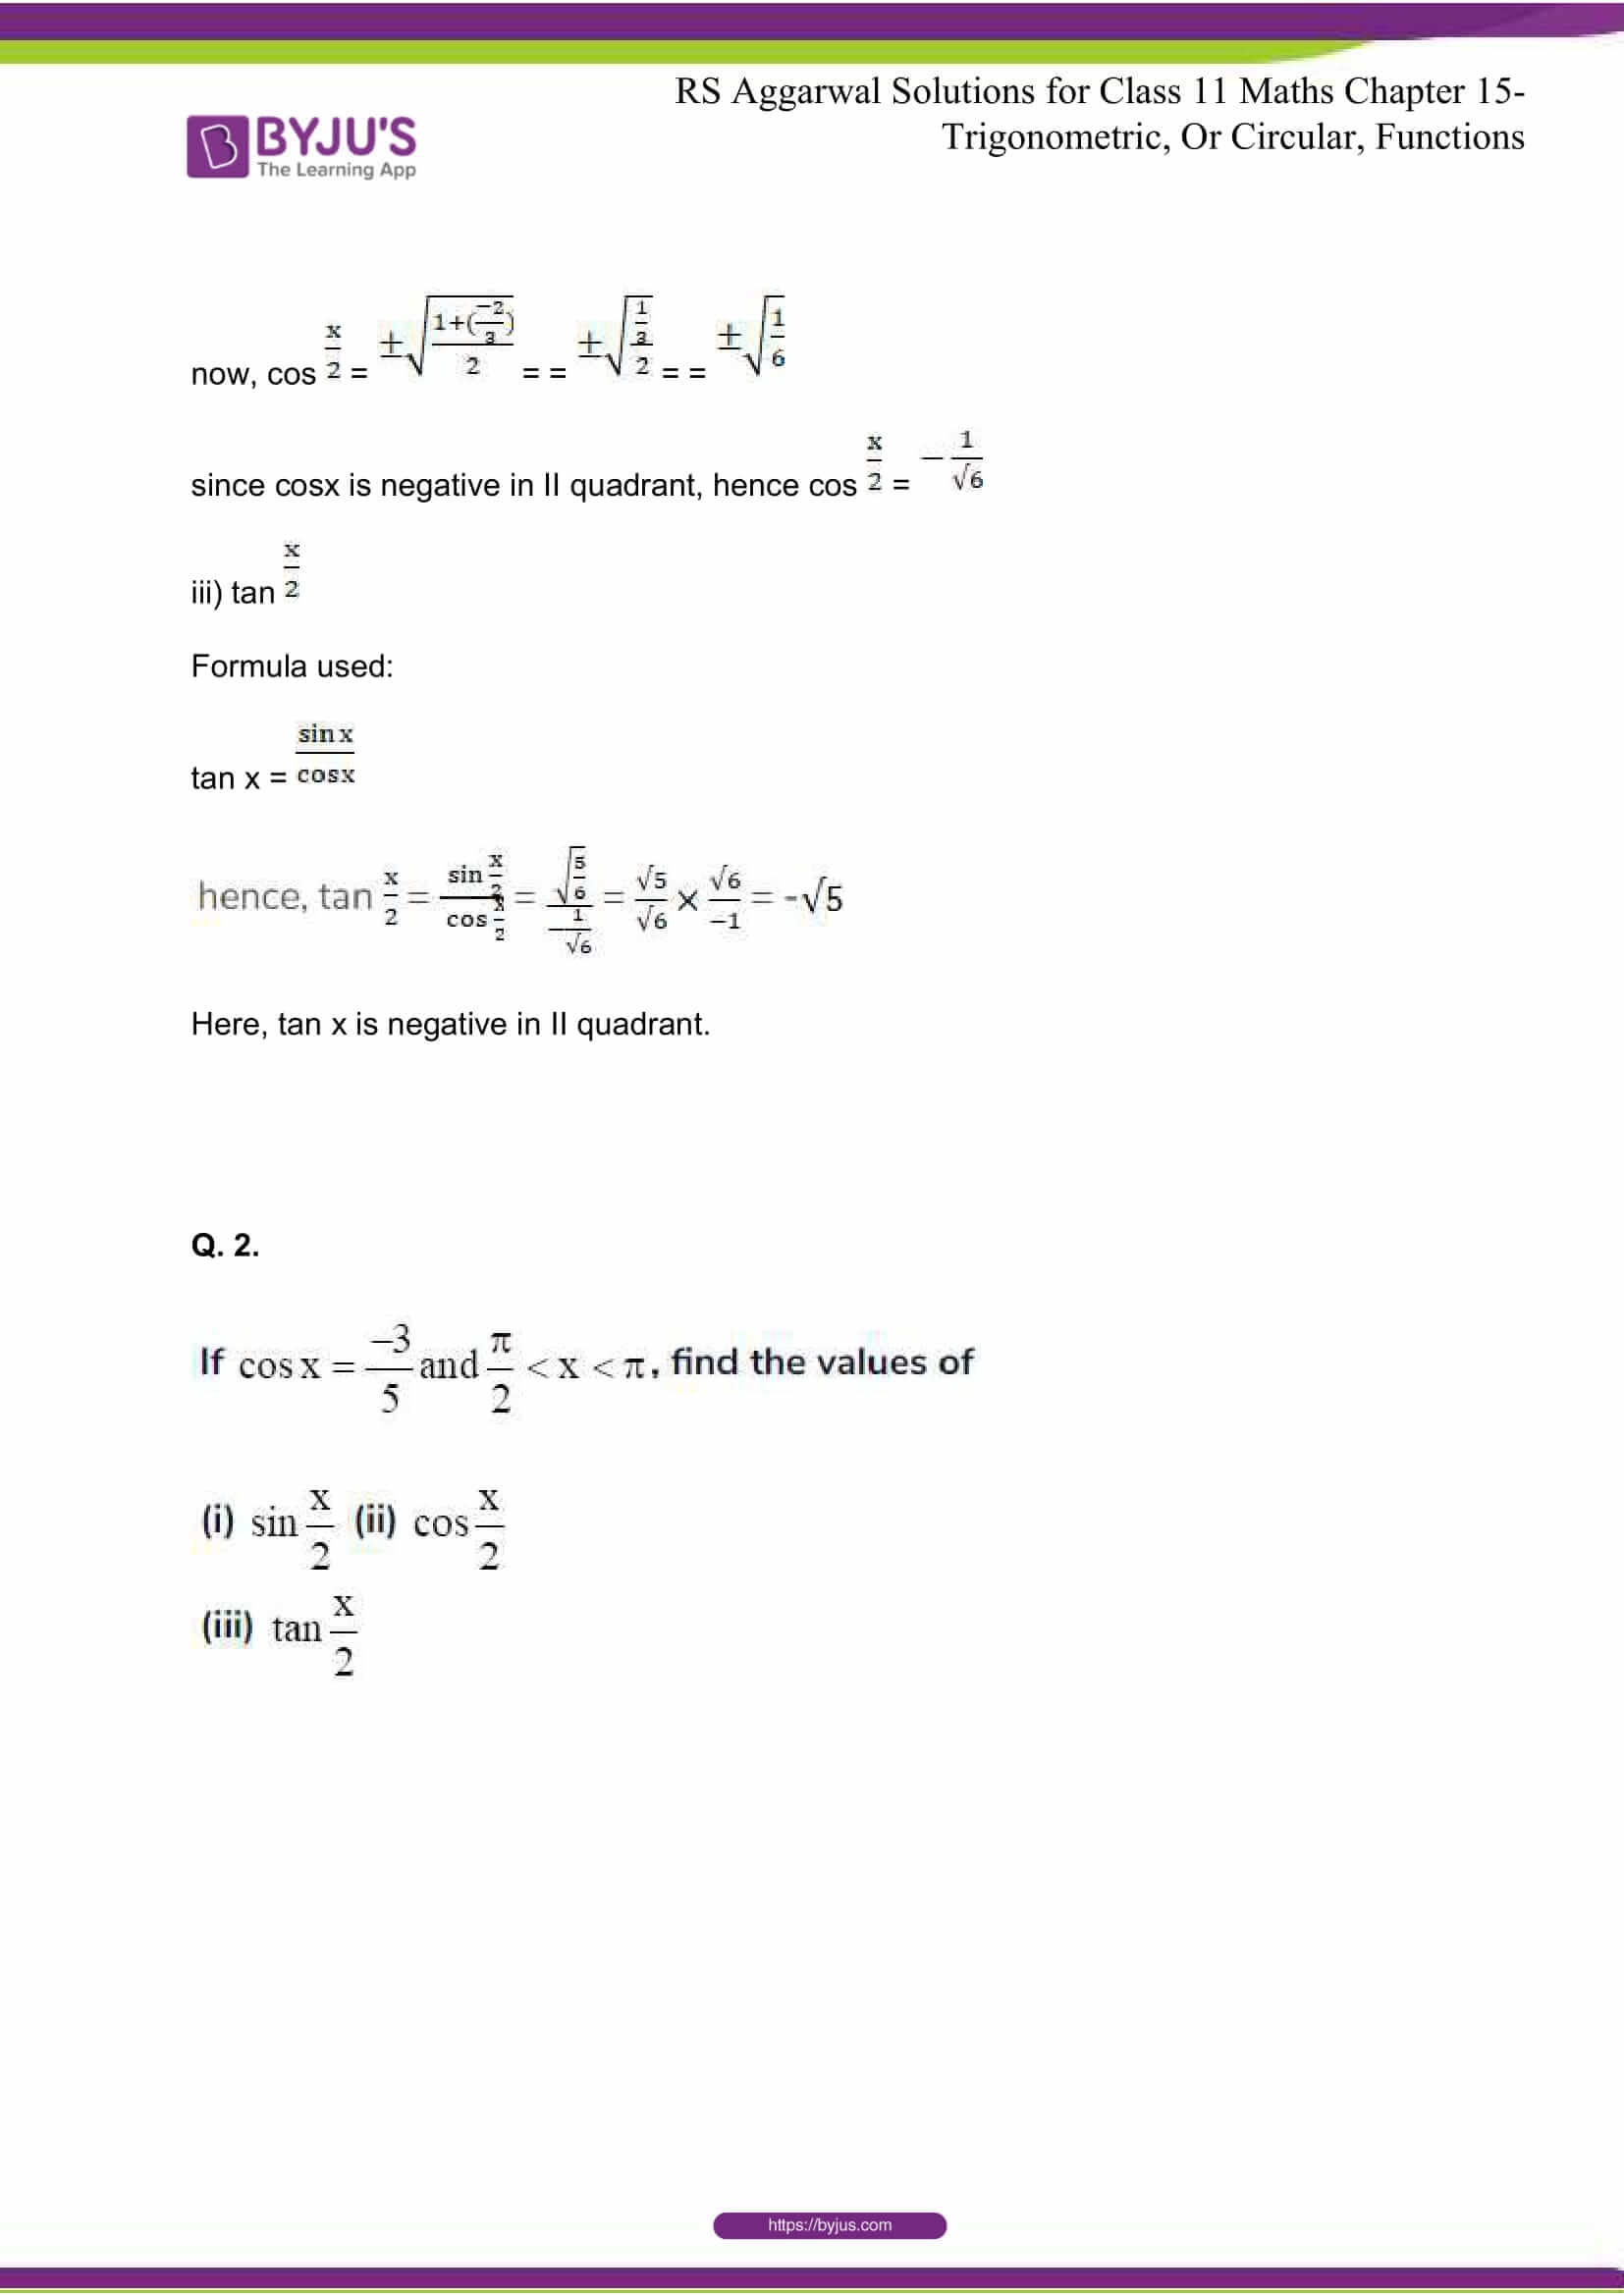 rsaggarwal solutions class 11 maths chapter 15 115